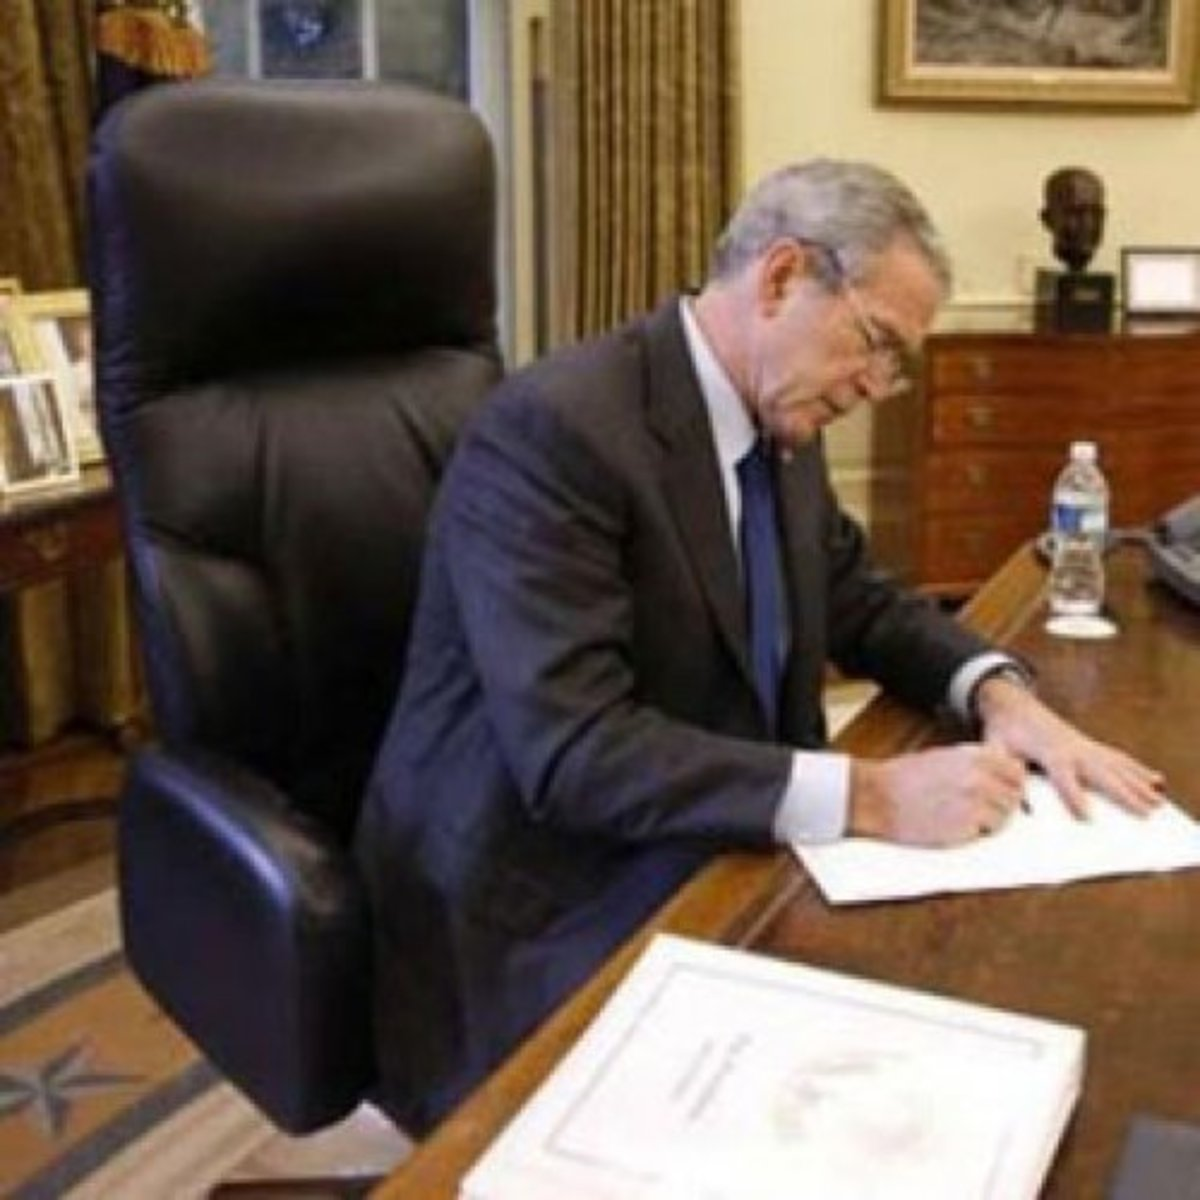 "President Bush's Oval Office desk chair was a Global ""Concorde"" Executive equipped with luxurious leather with contrasting stitching, The chair weighs about 100 pounds as it is built on a steel frame along with several other heavy-duty components."